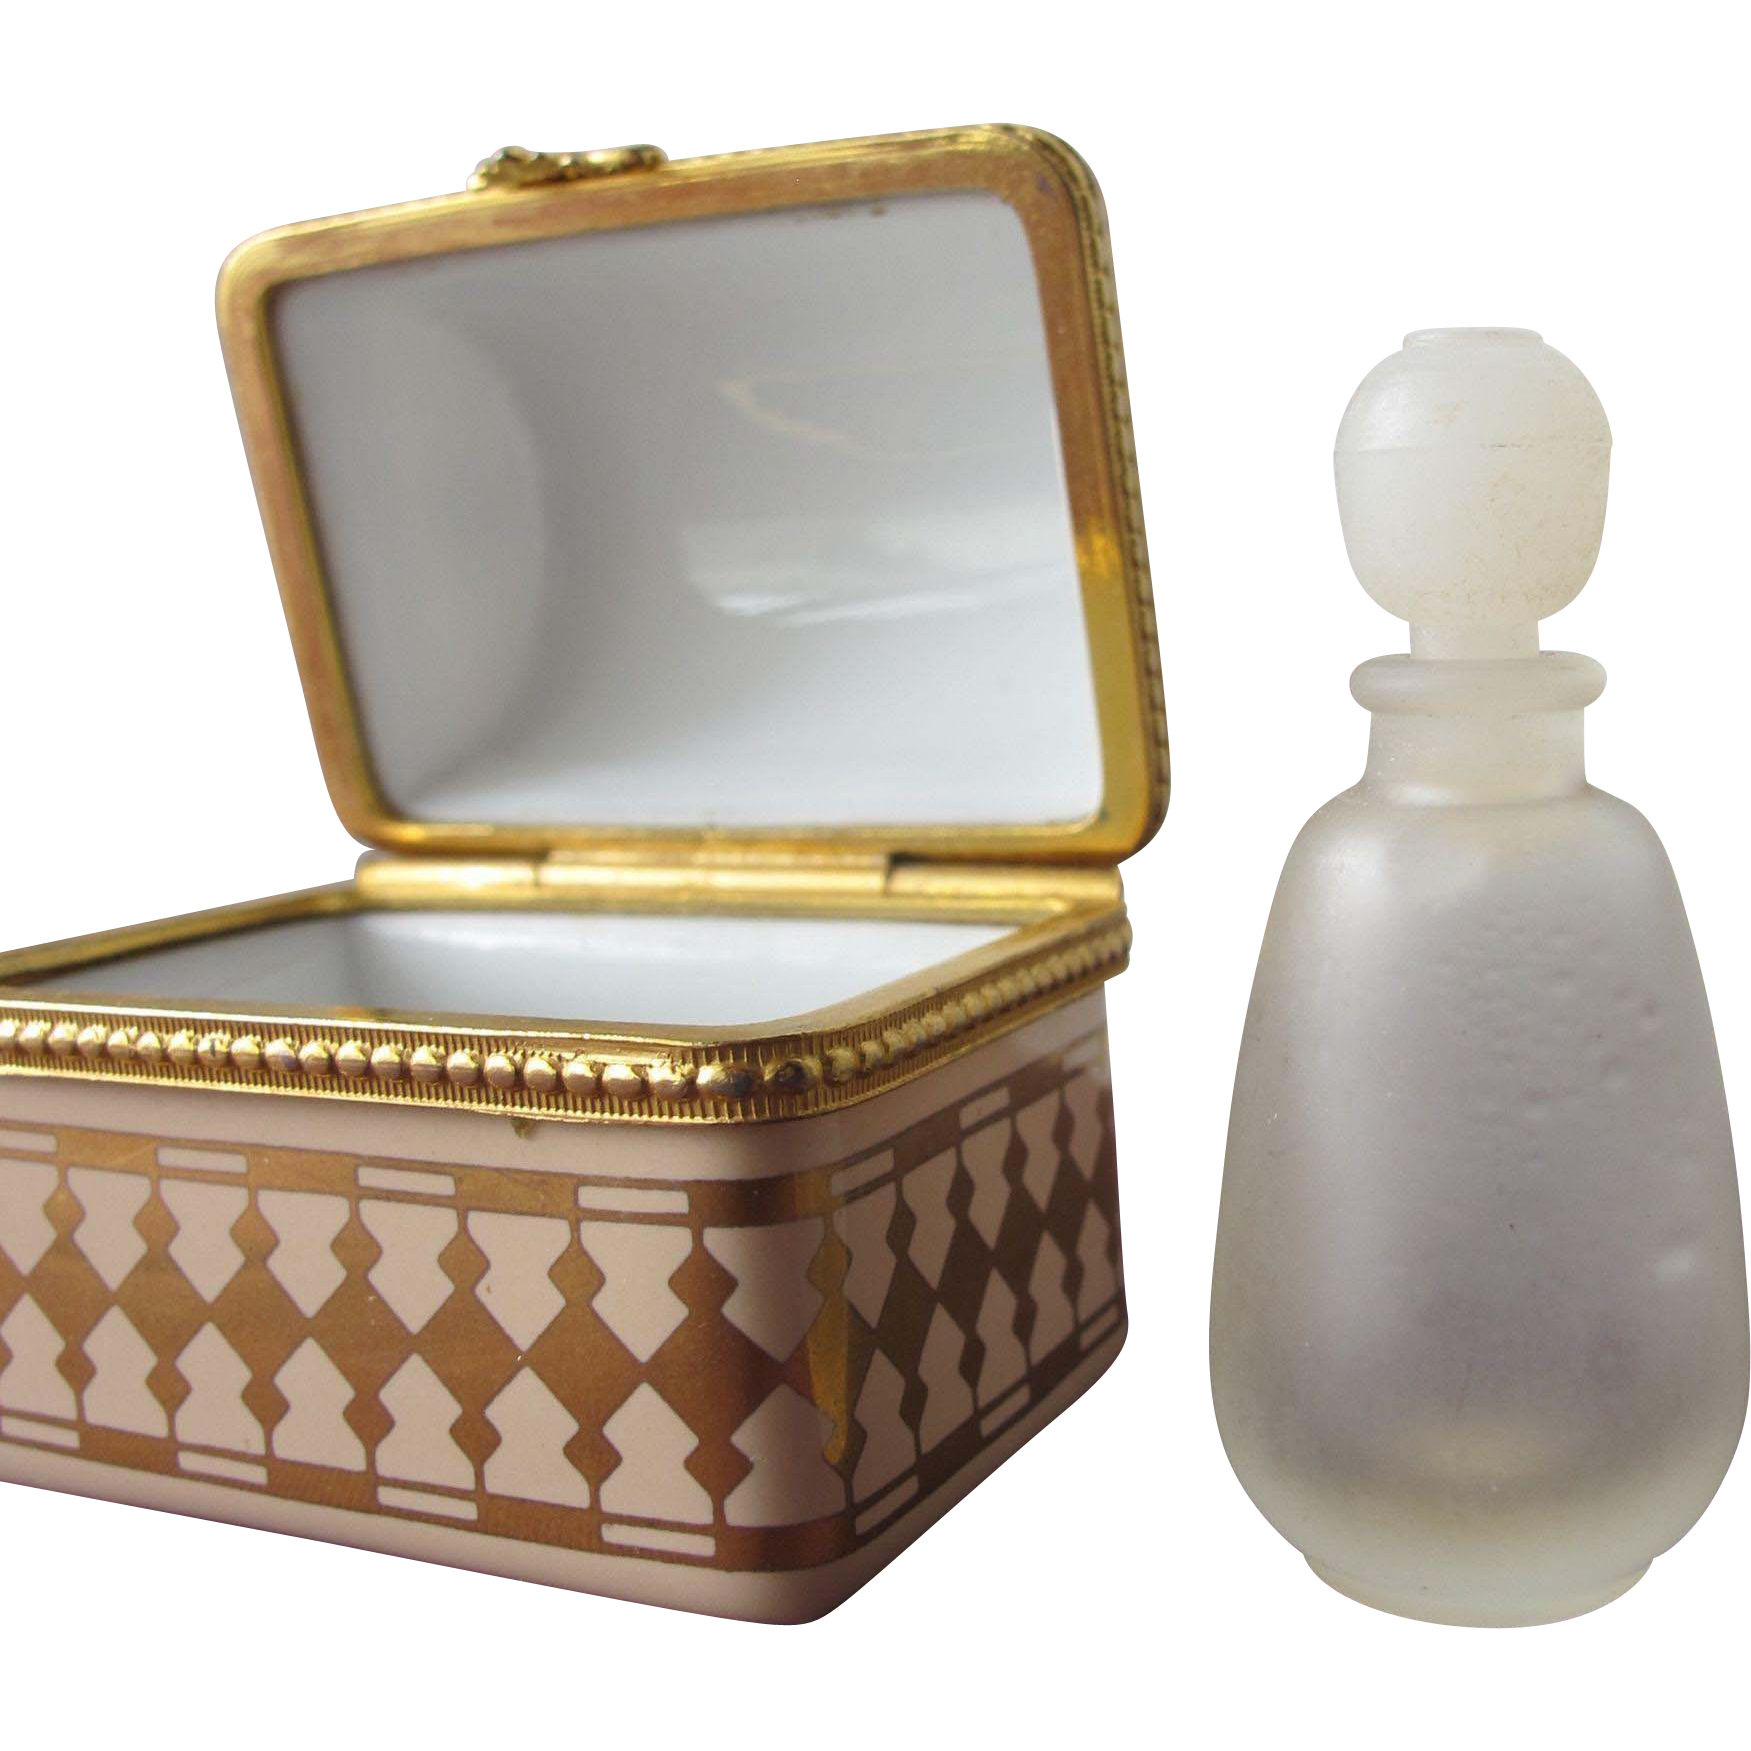 Estee Lauder Porcelain Treasure Chest with Mini Perfume Bottle Private Collection Keepsake Box